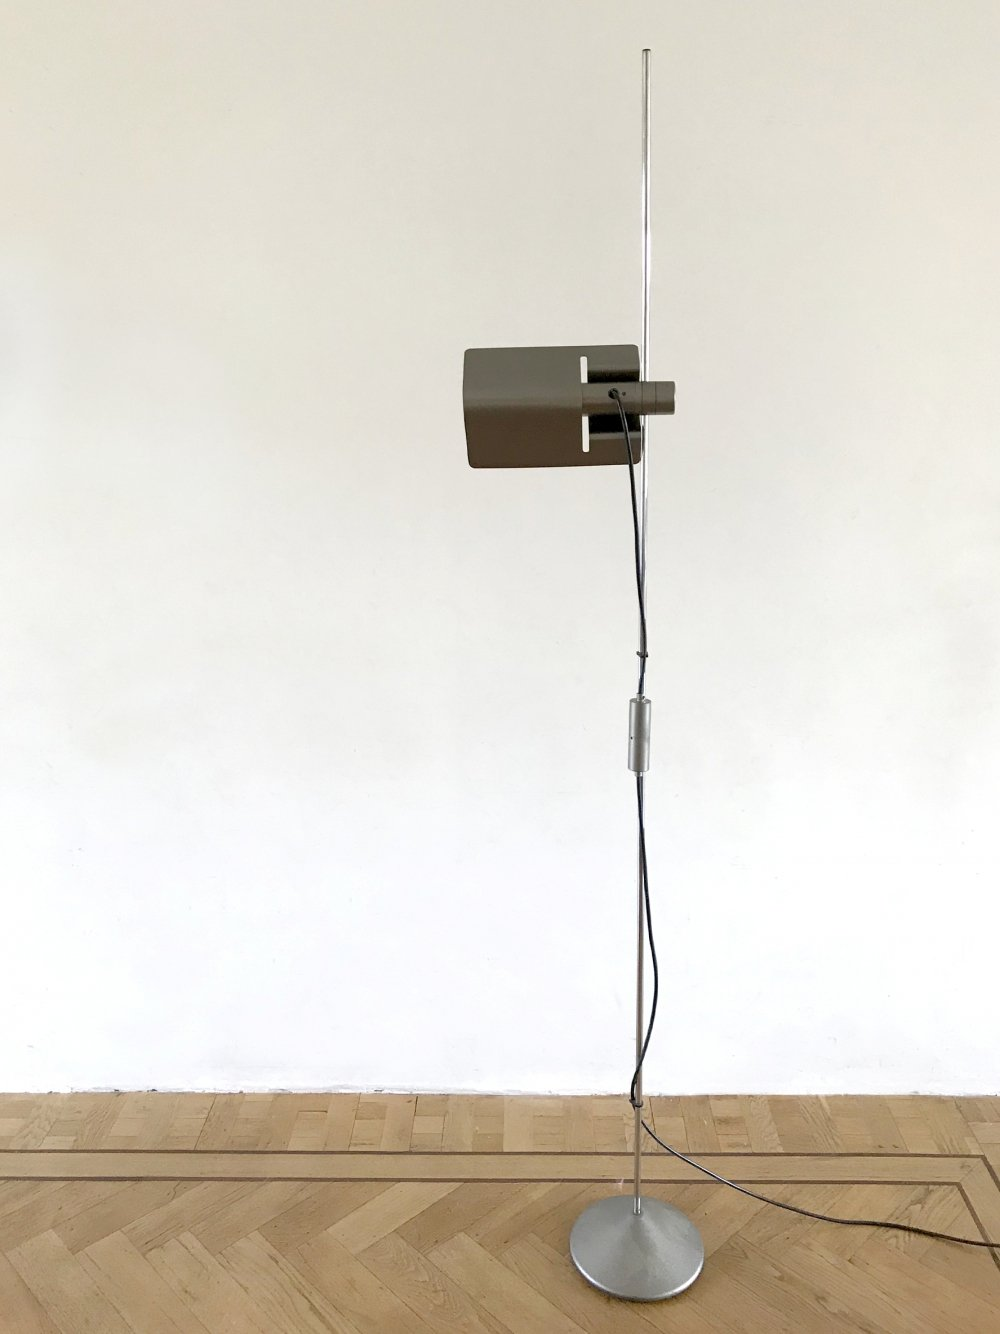 Extremely rare floor lamp by Barbieri & Marianelli for Tronconi, 1970